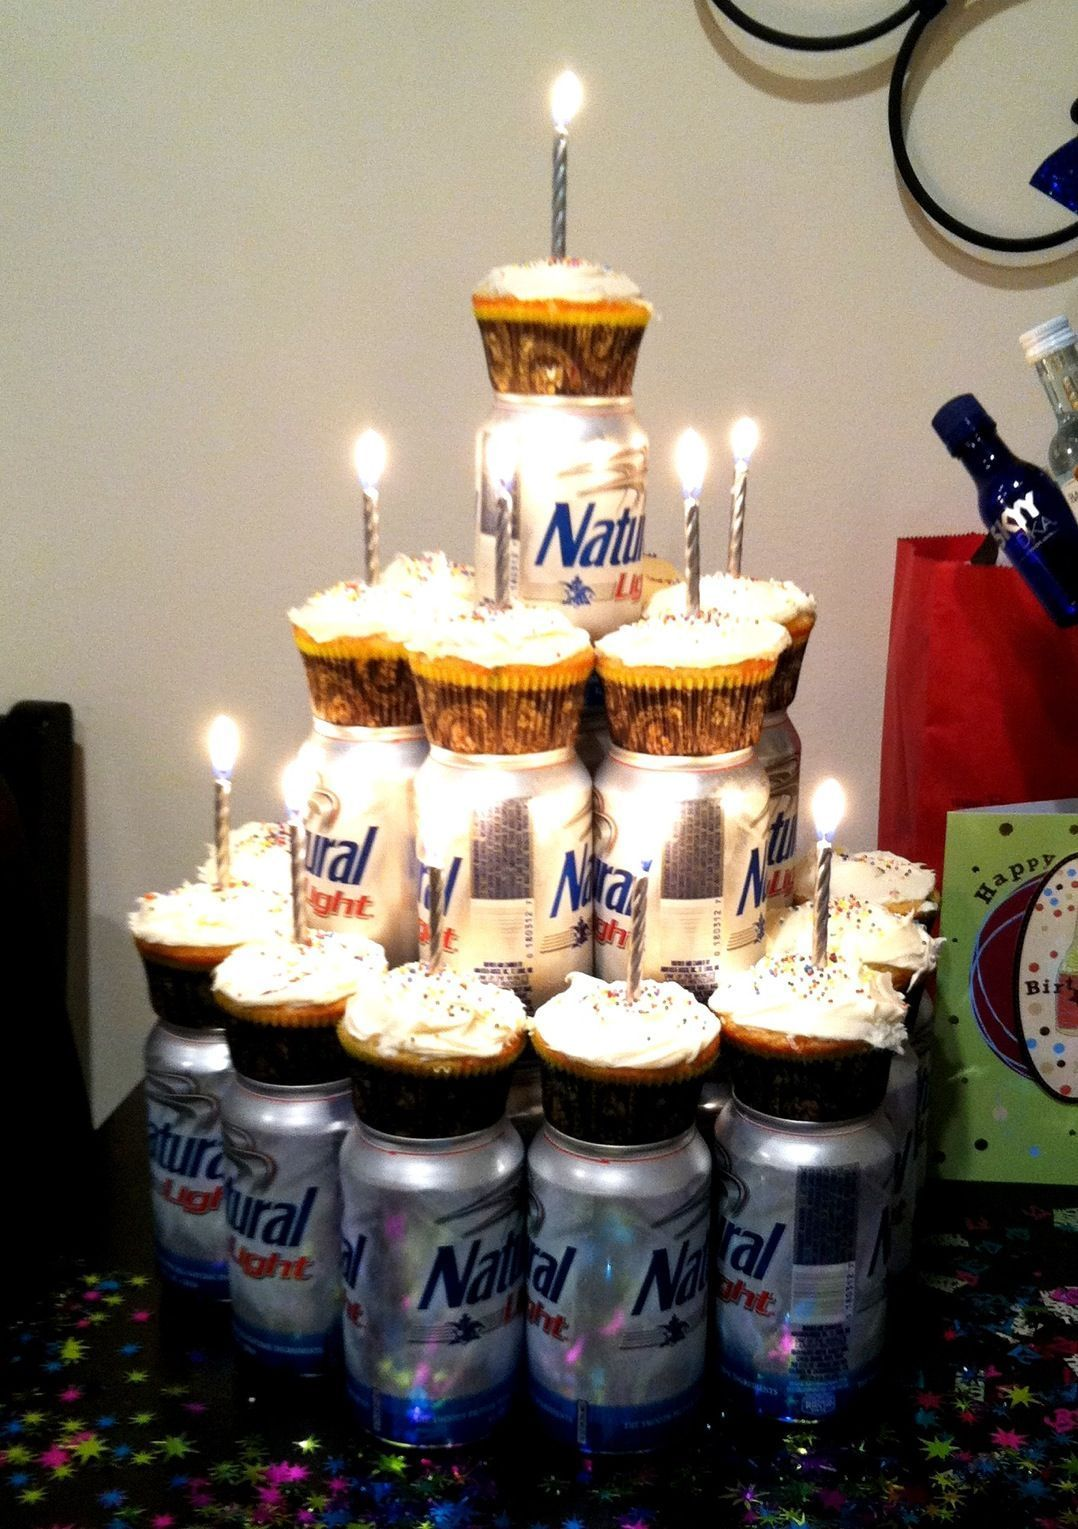 Cupcakes & your man's favorite beerCute idea for my